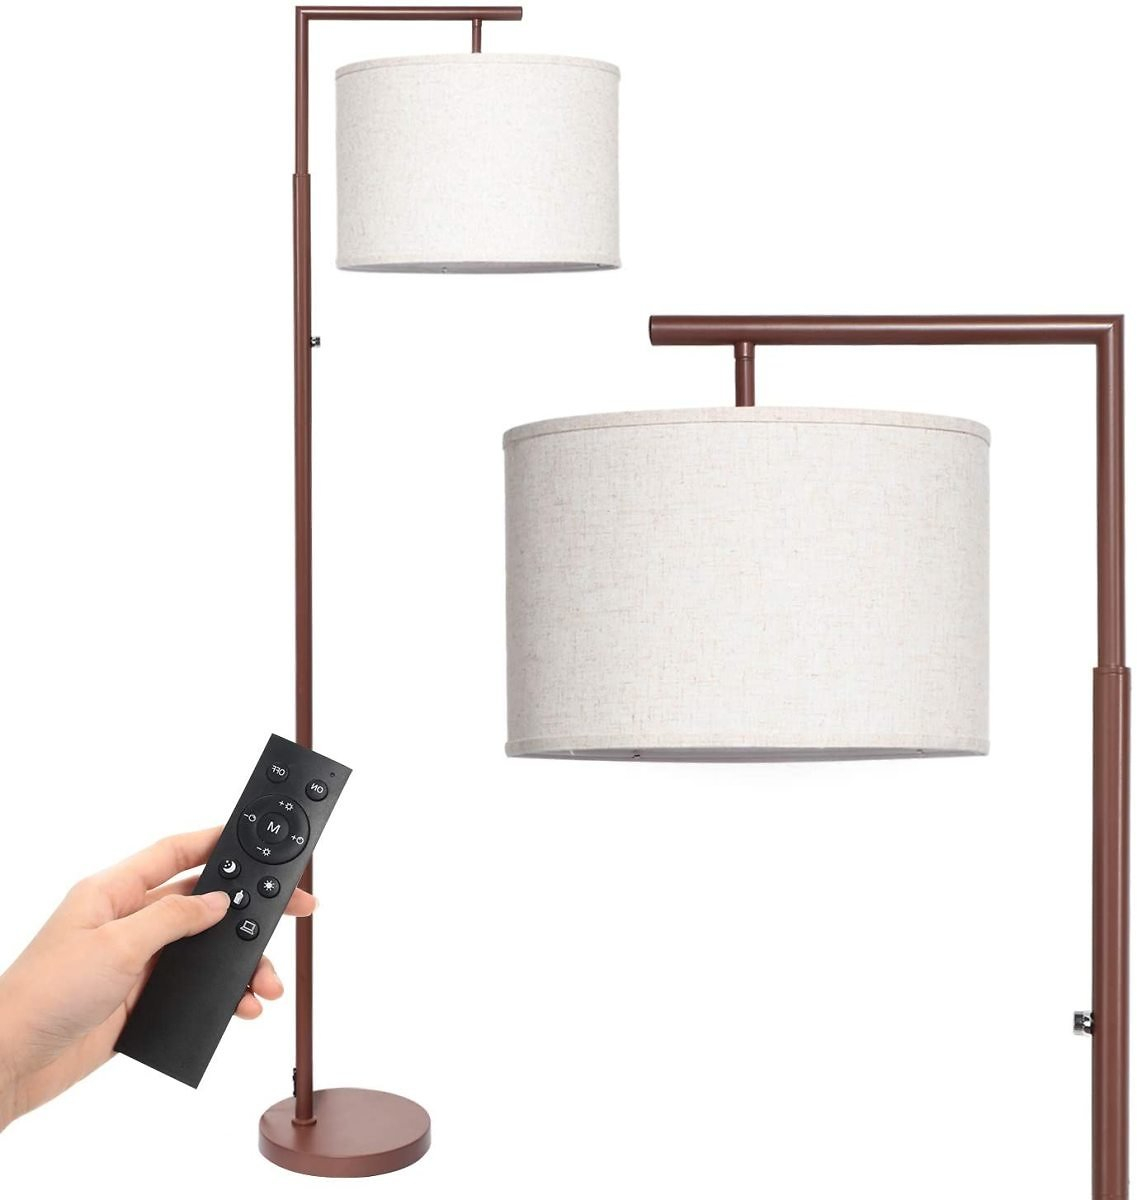 Deeak Floor Lamp,Stepless Brightness &4 Color Temperature Modern Standing Shade Led Floor Lamp with Remote & Touch Control for L